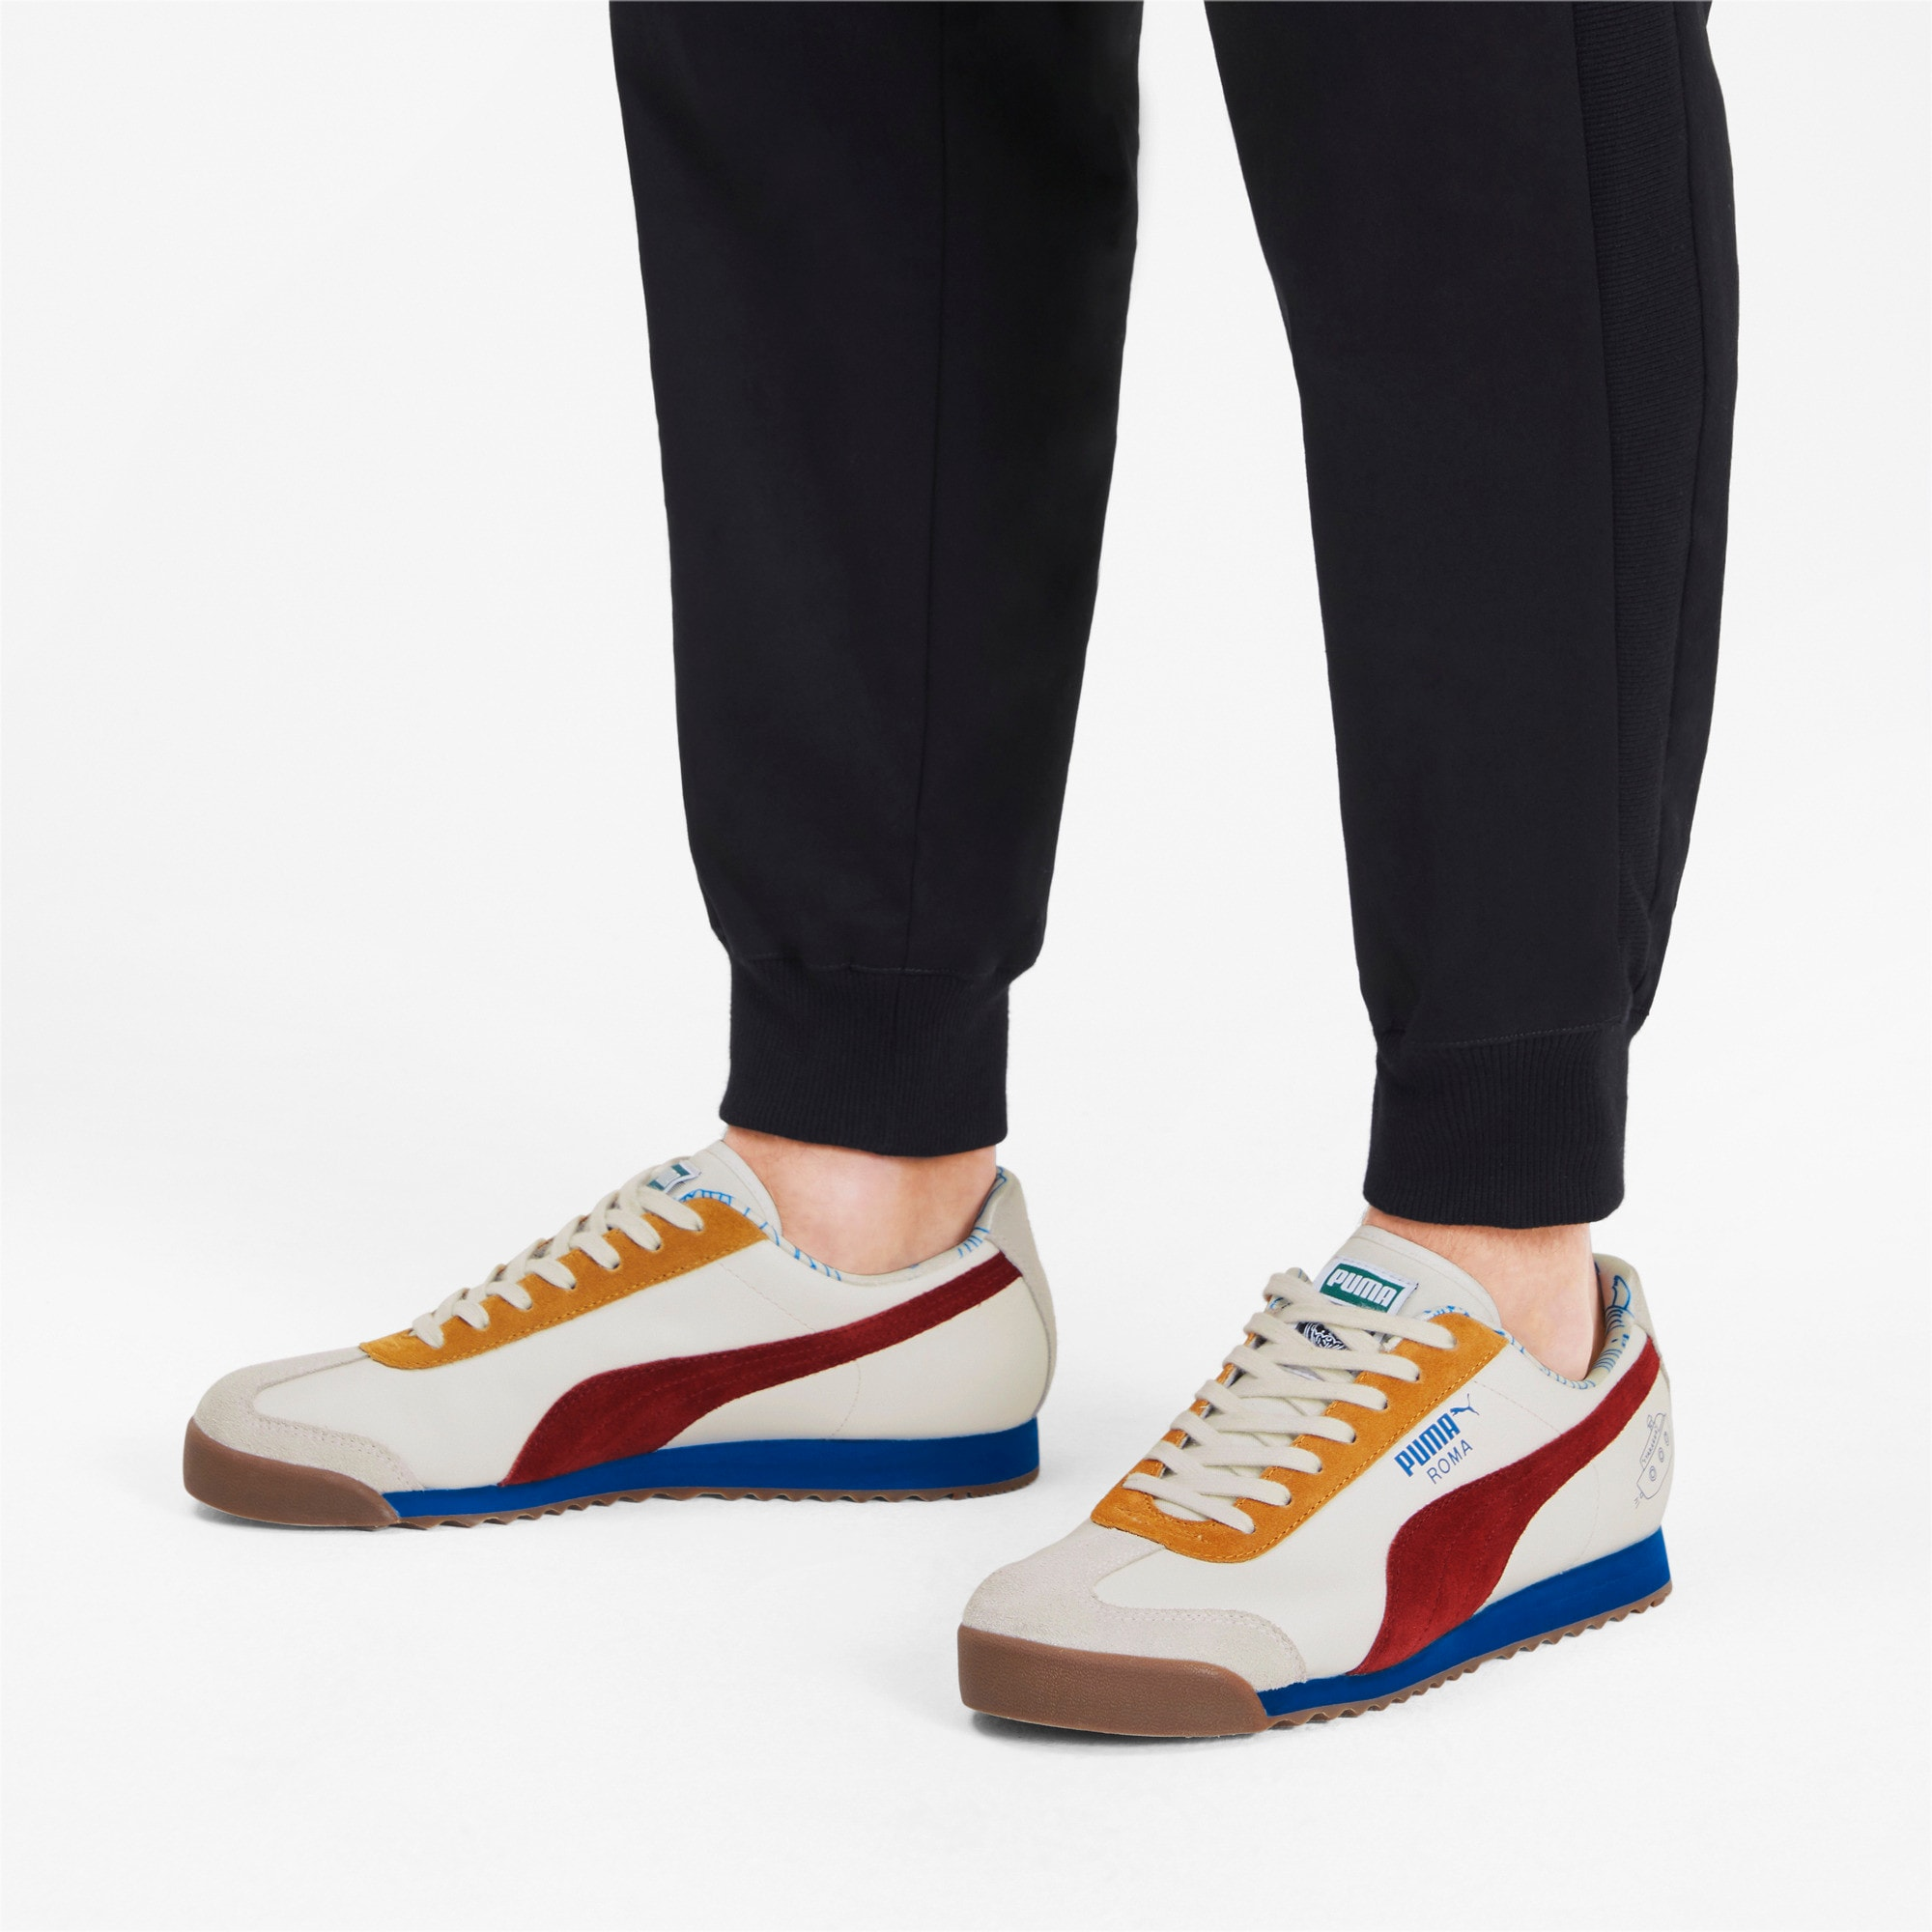 Thumbnail 3 of PUMA x TYAKASHA Roma Trainers, Marshmallow-Fired Brick, medium